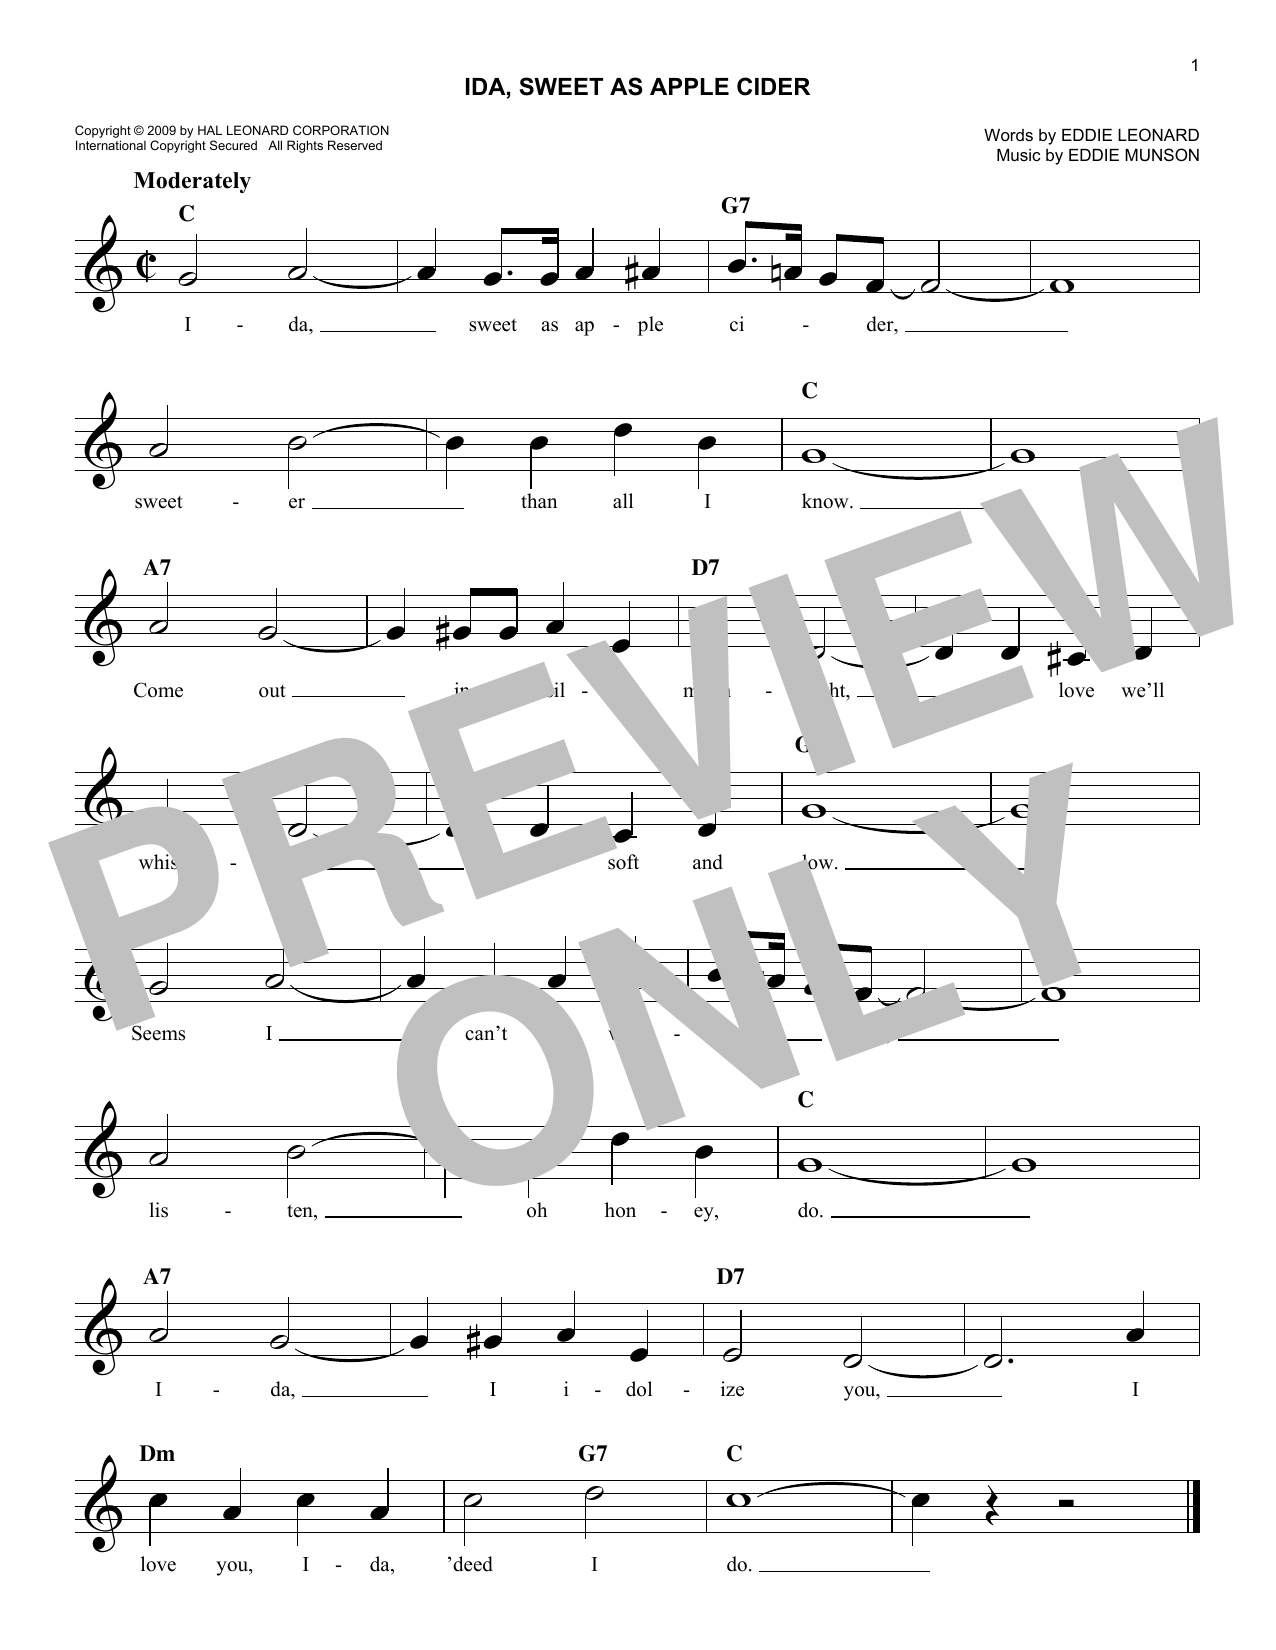 Eddie Munson Ida, Sweet As Apple Cider sheet music notes and chords. Download Printable PDF.